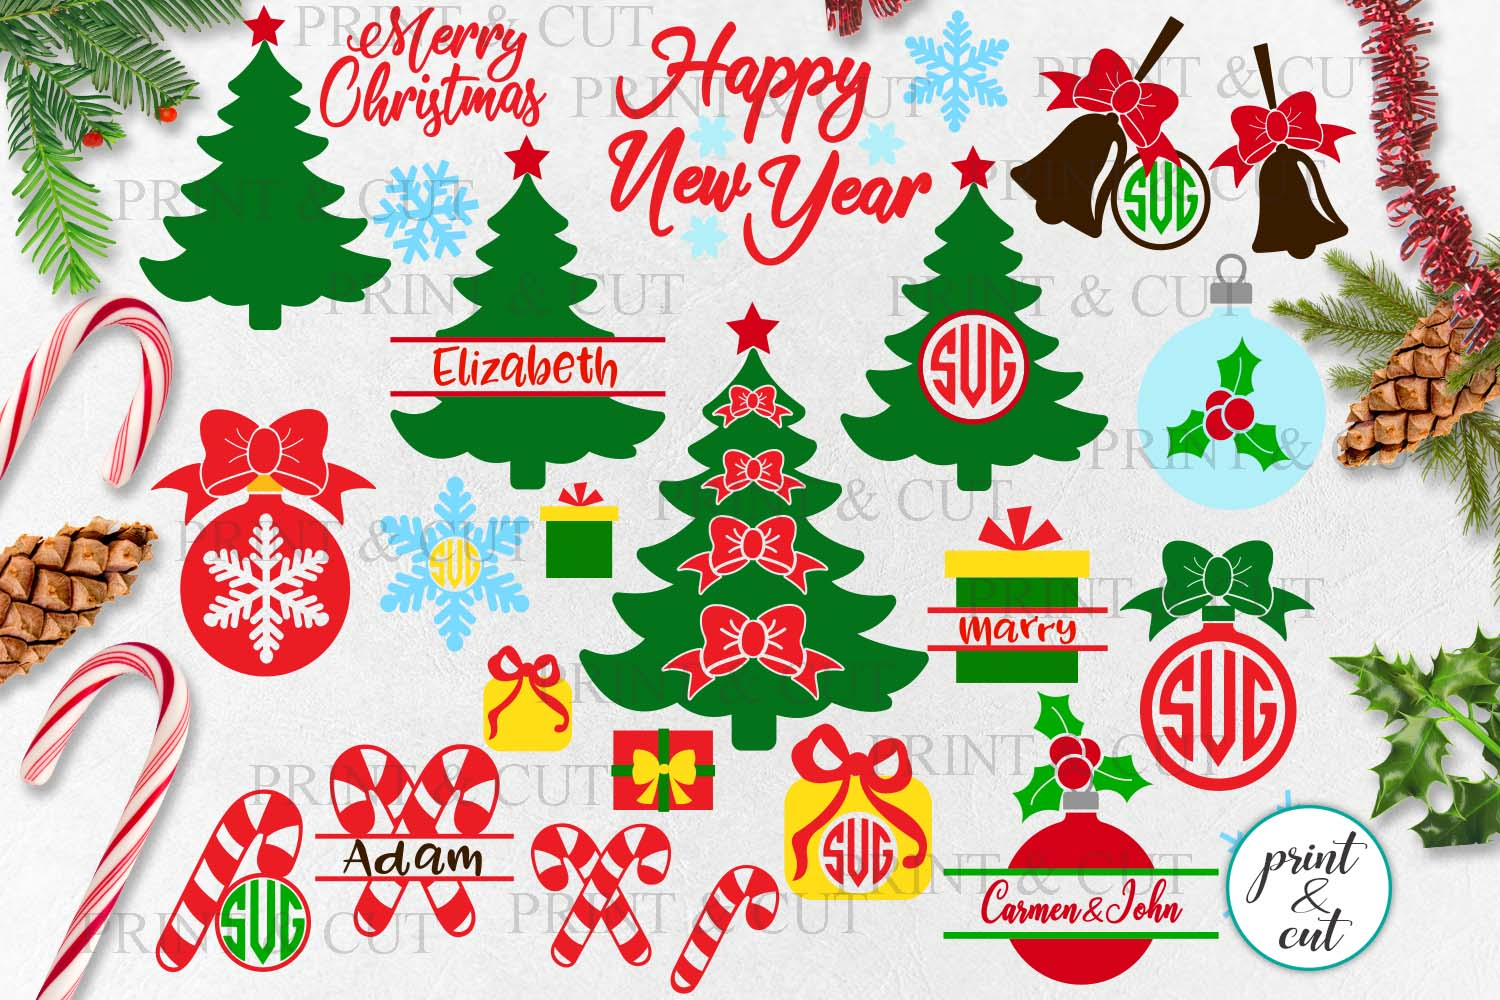 Download Free Christmas Bundle Graphic By Cornelia Creative Fabrica for Cricut Explore, Silhouette and other cutting machines.